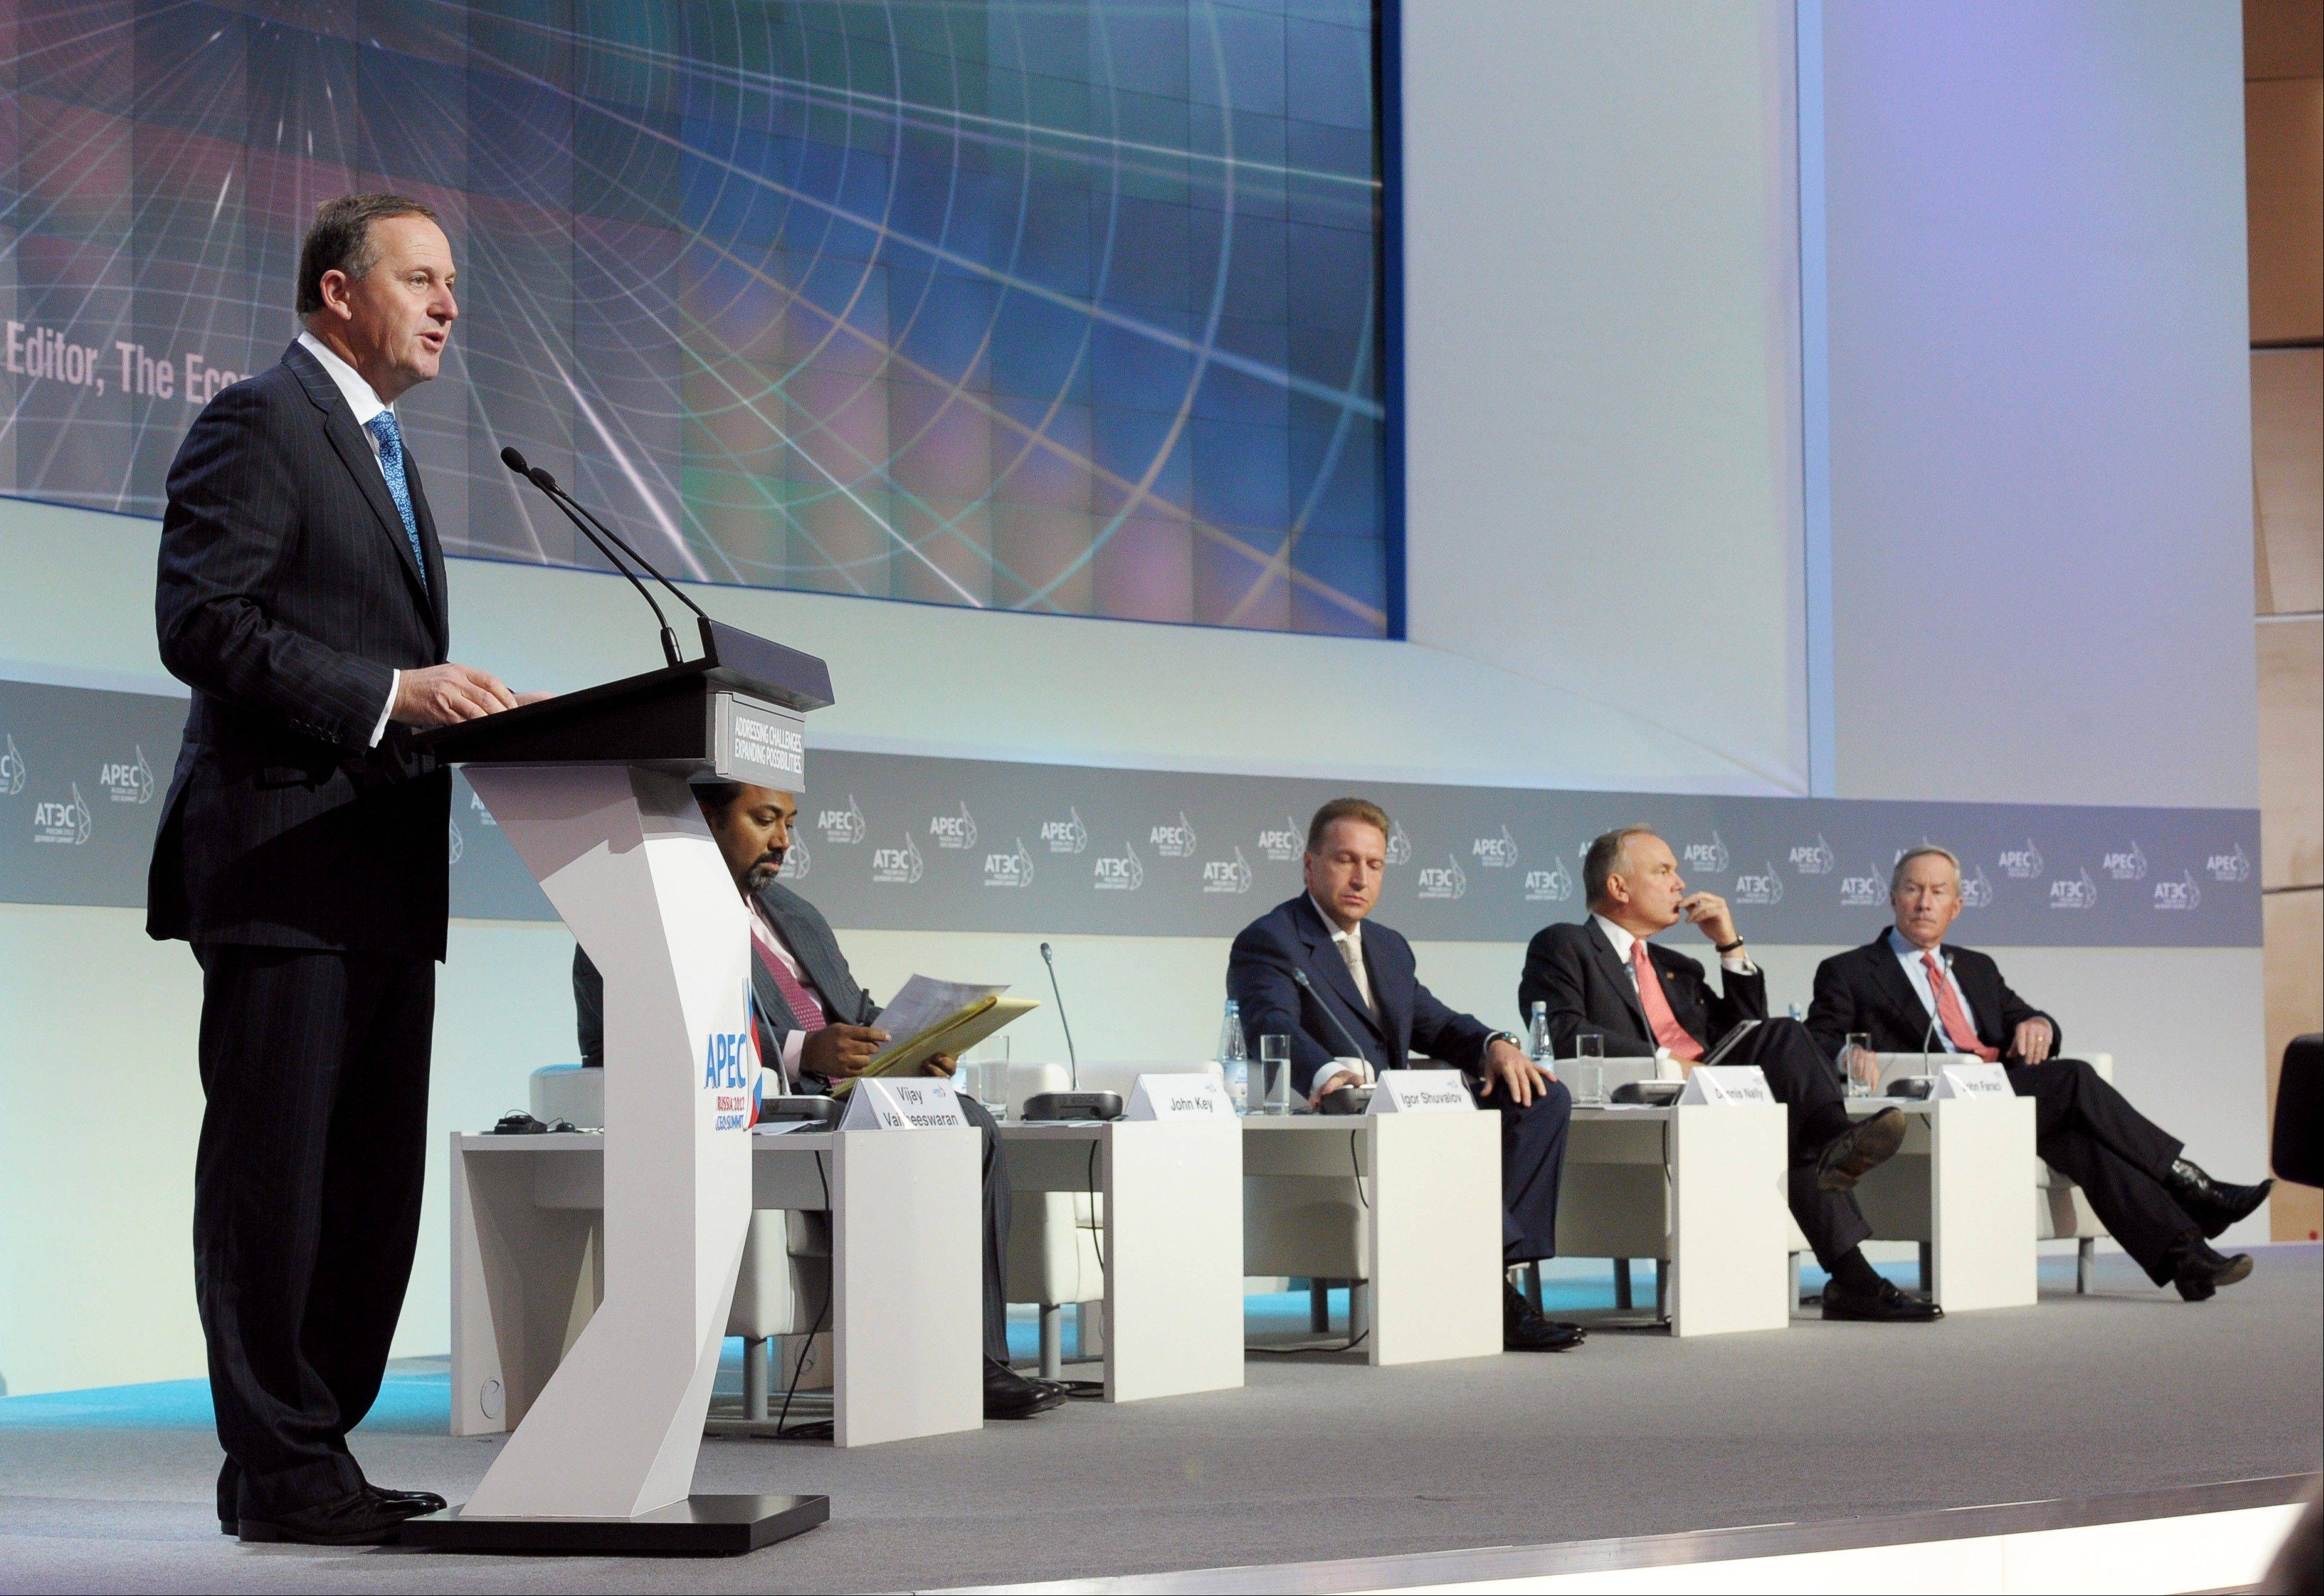 New Zealand Prime Minister John Key addresses the APEC summit.